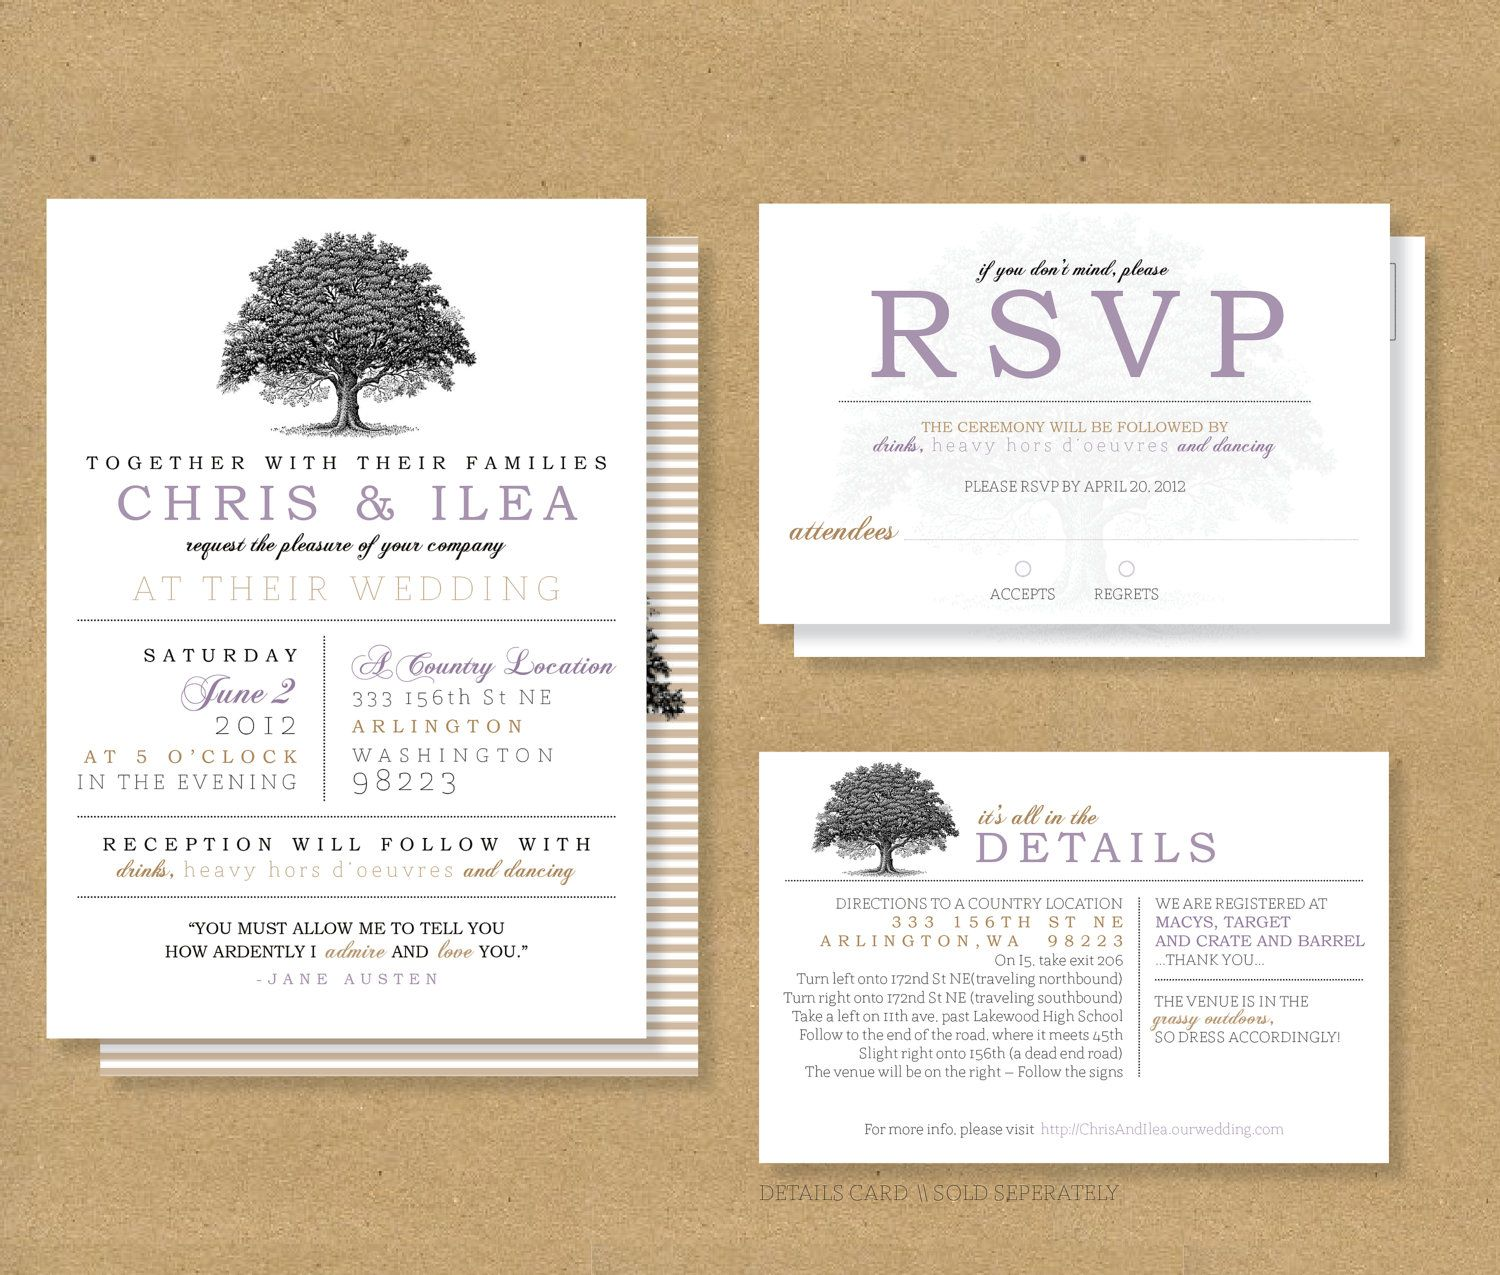 Sample Wedding Invitation Card: Pin On My Wedding